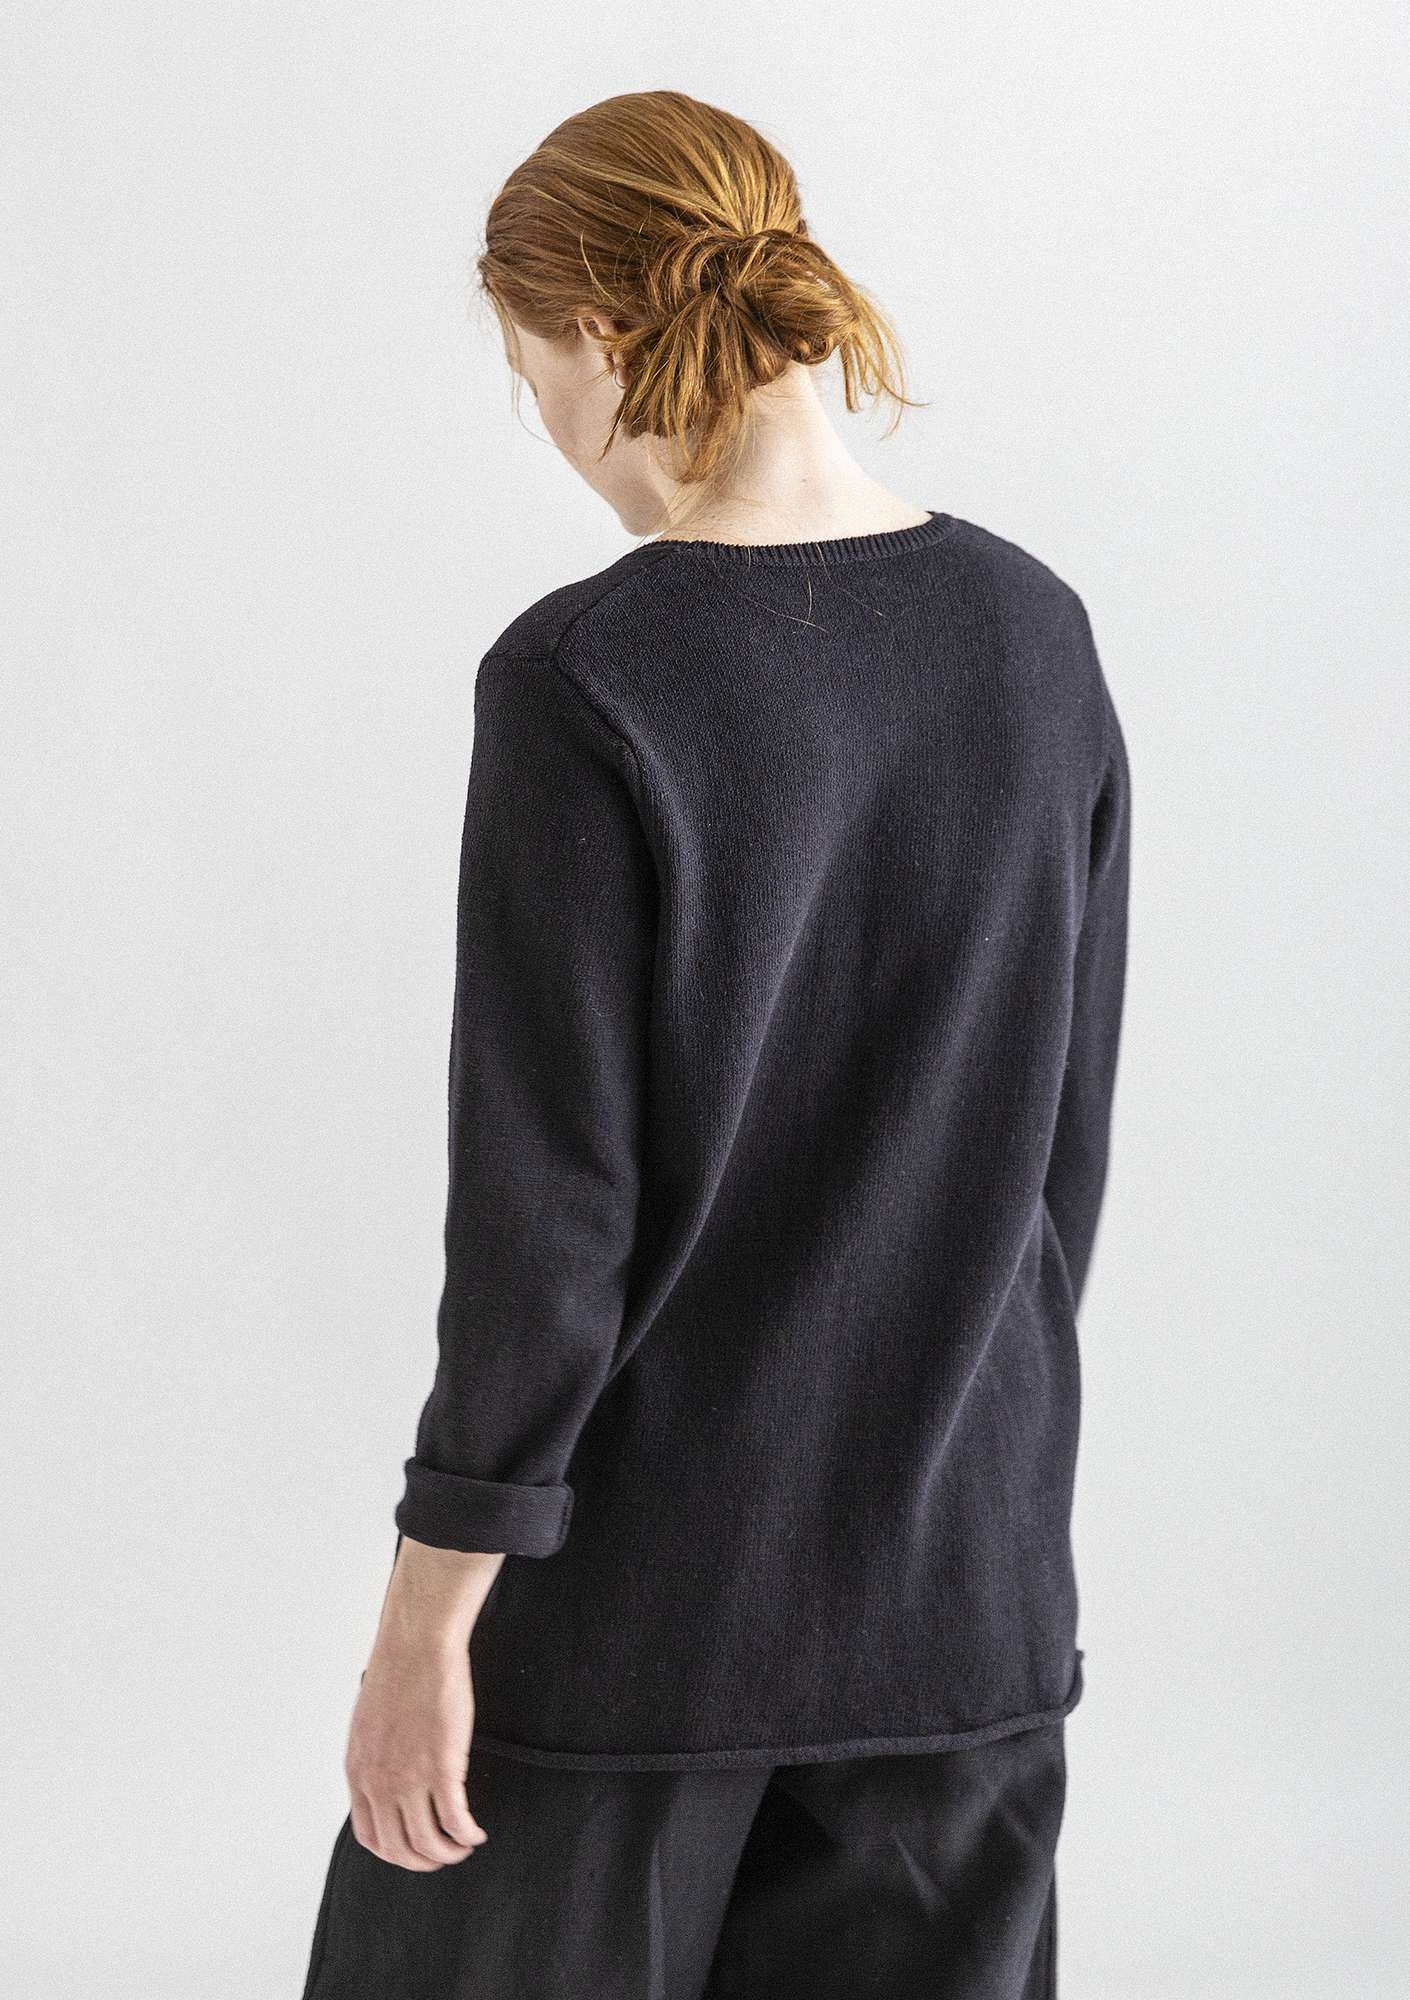 BÄSTIS sweater in organic cotton black